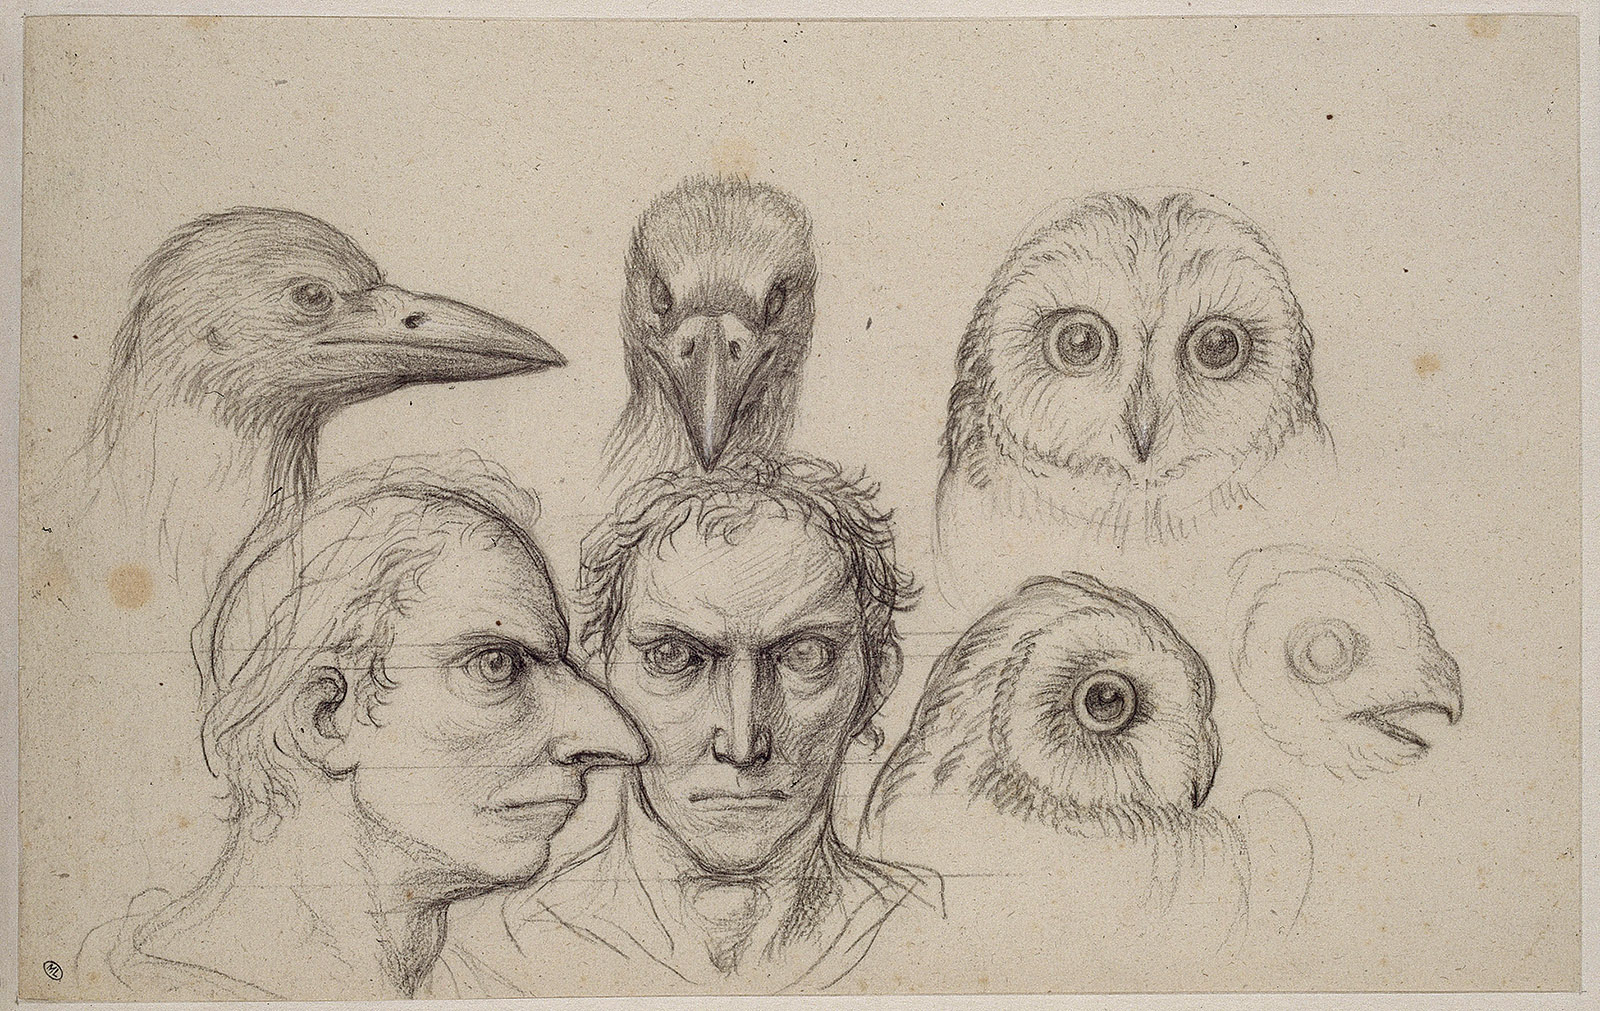 Heads of owls, crows, and men resembling crows; drawing by Charles Le Brun, circa 1668–1678